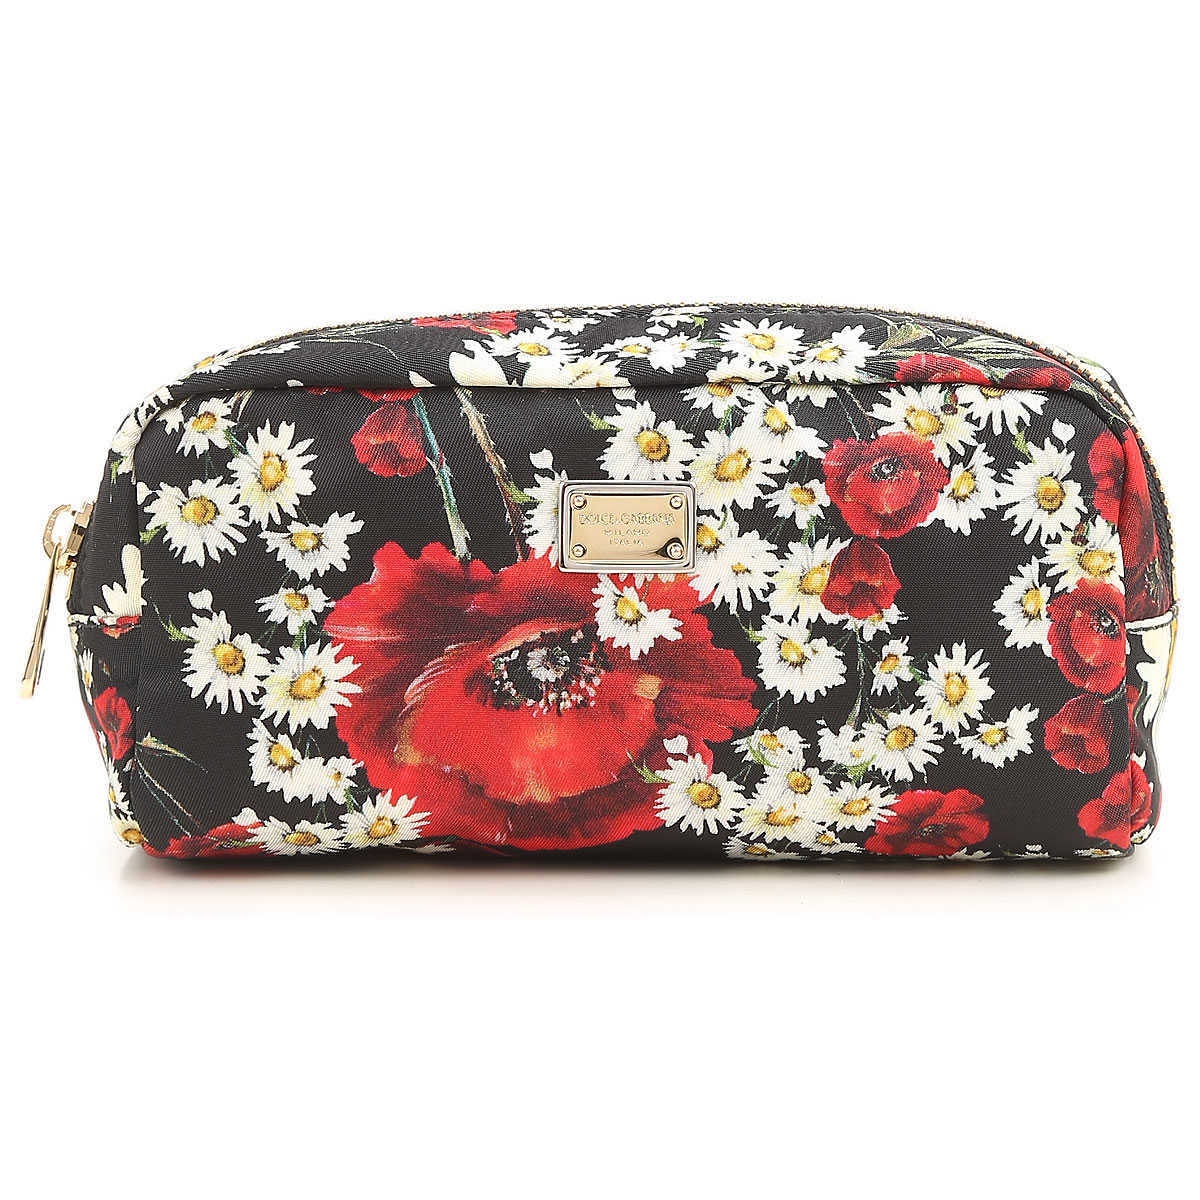 Dolce & Gabbana Womens Accessories in Outlet Black Canada - GOOFASH -